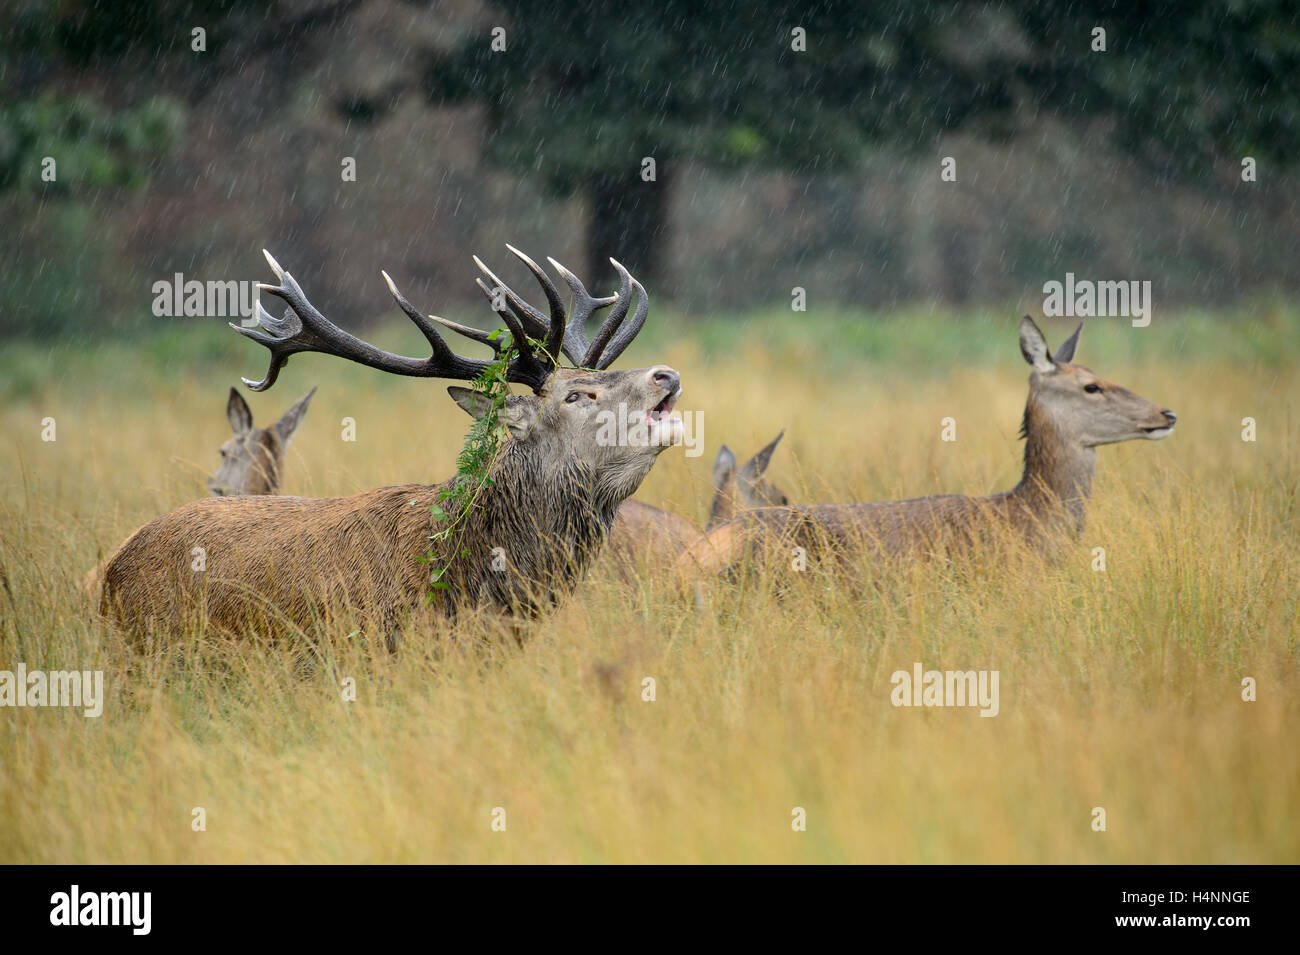 Calling red deer stag with does in the rain during the rutting season. Richmond Park, London, UK - Stock Image